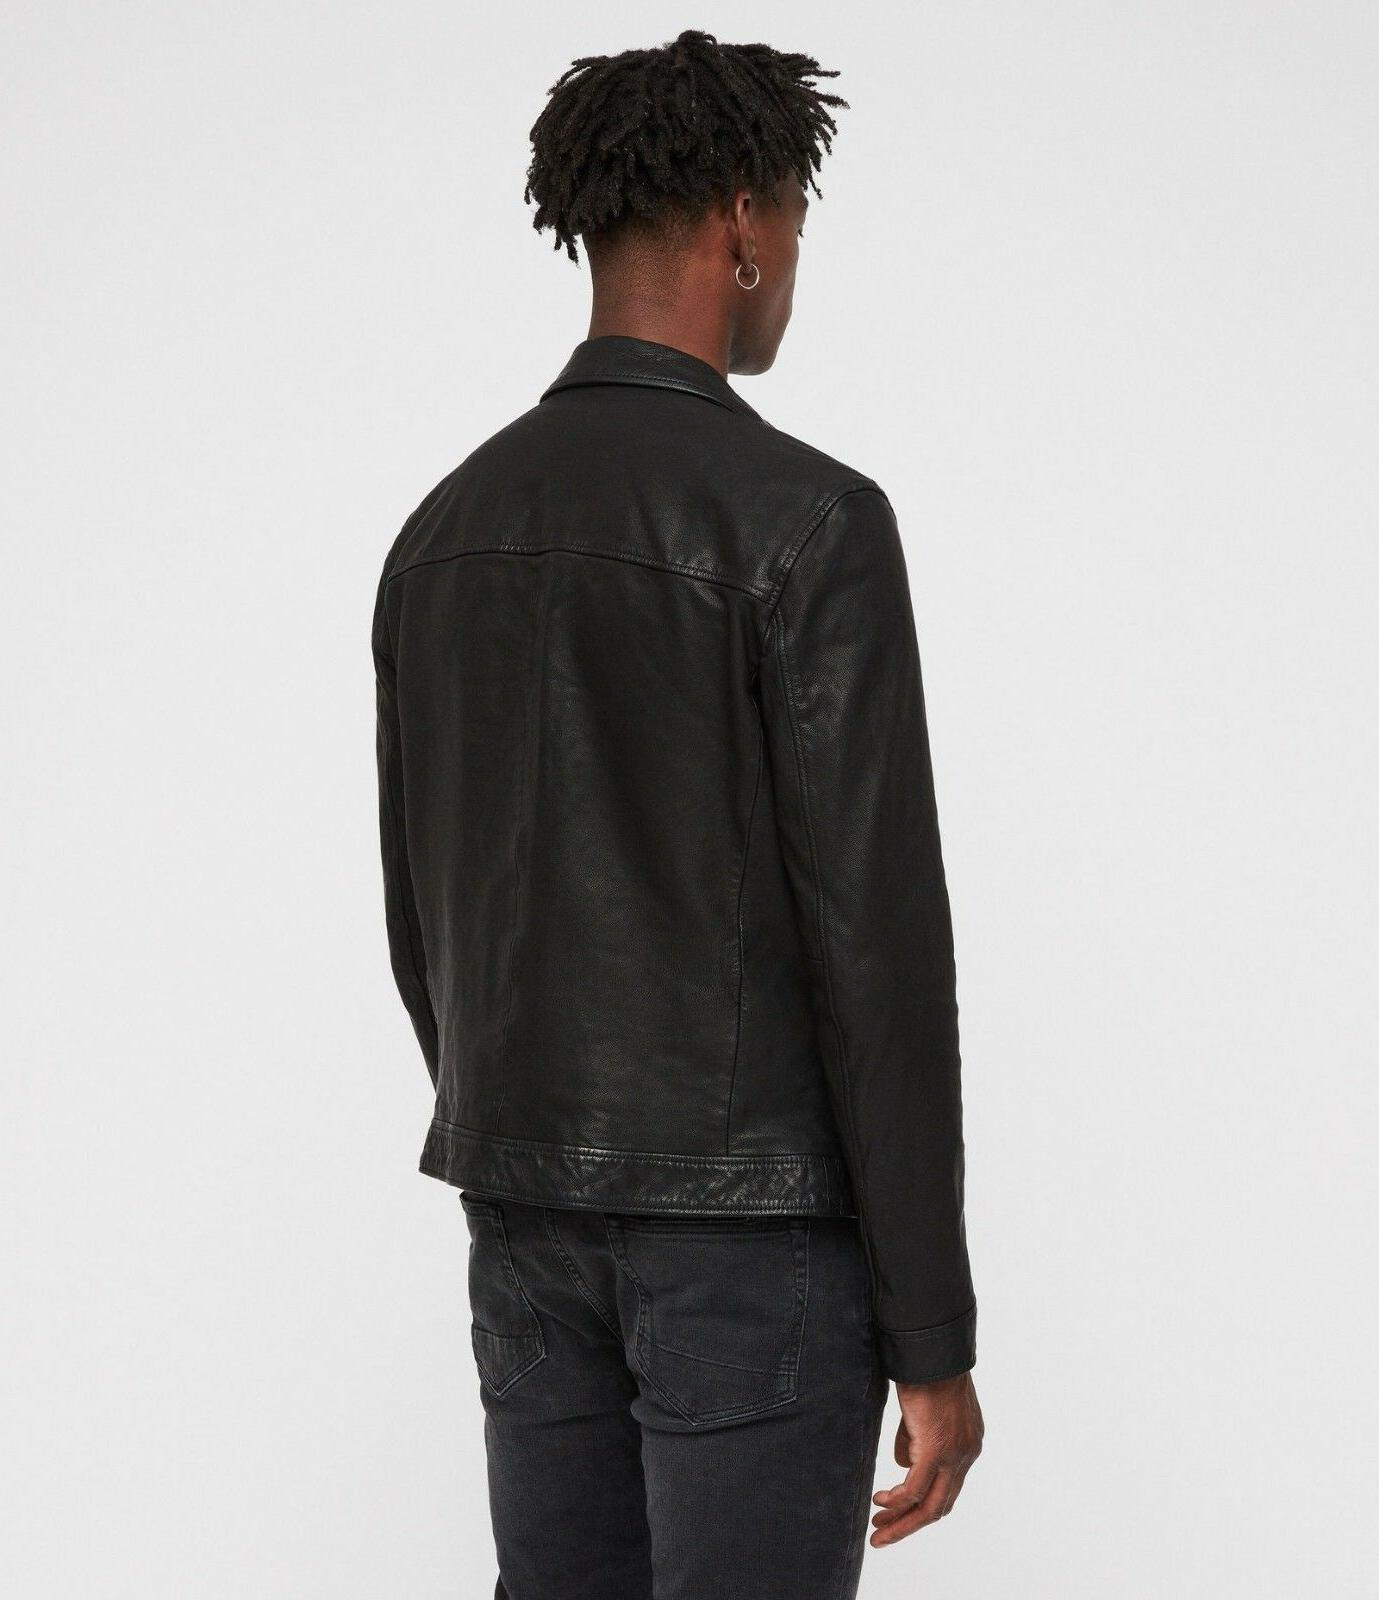 BNWT All Lark Jacket Worldwide Shipping 5 Day Delivery